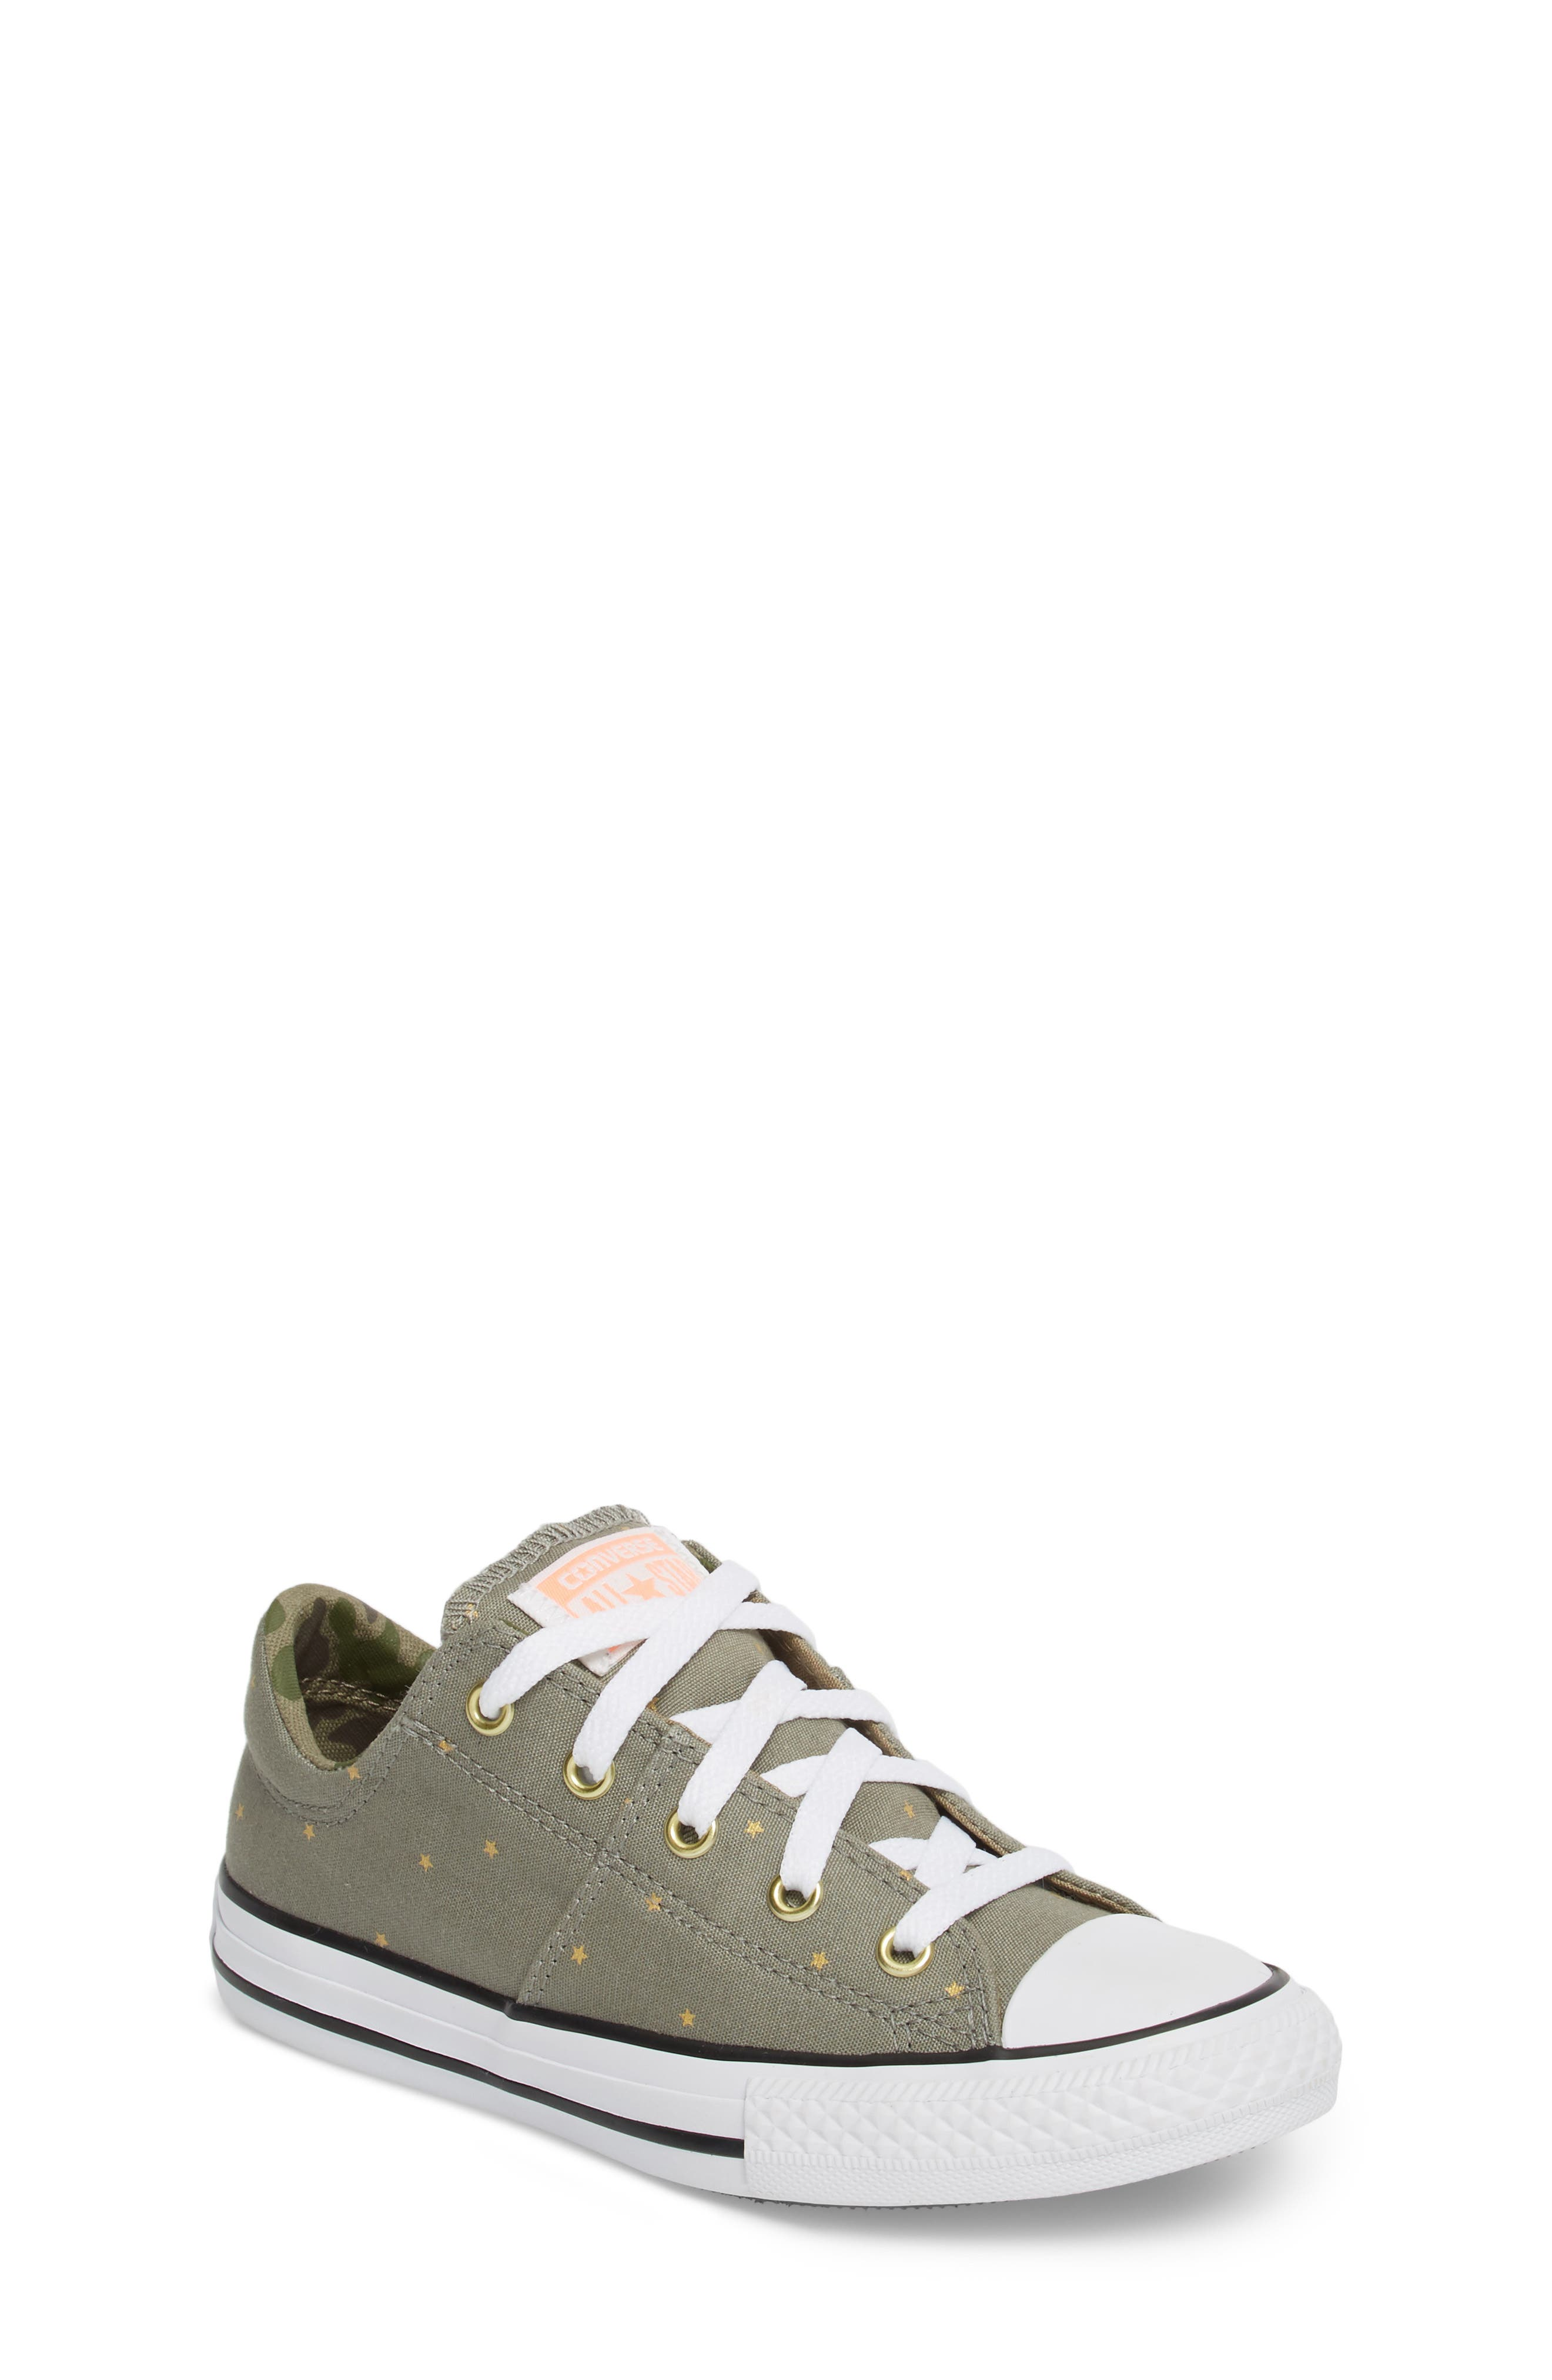 All Star<sup>®</sup> Madison Patterned Low Top Sneaker,                         Main,                         color, 022